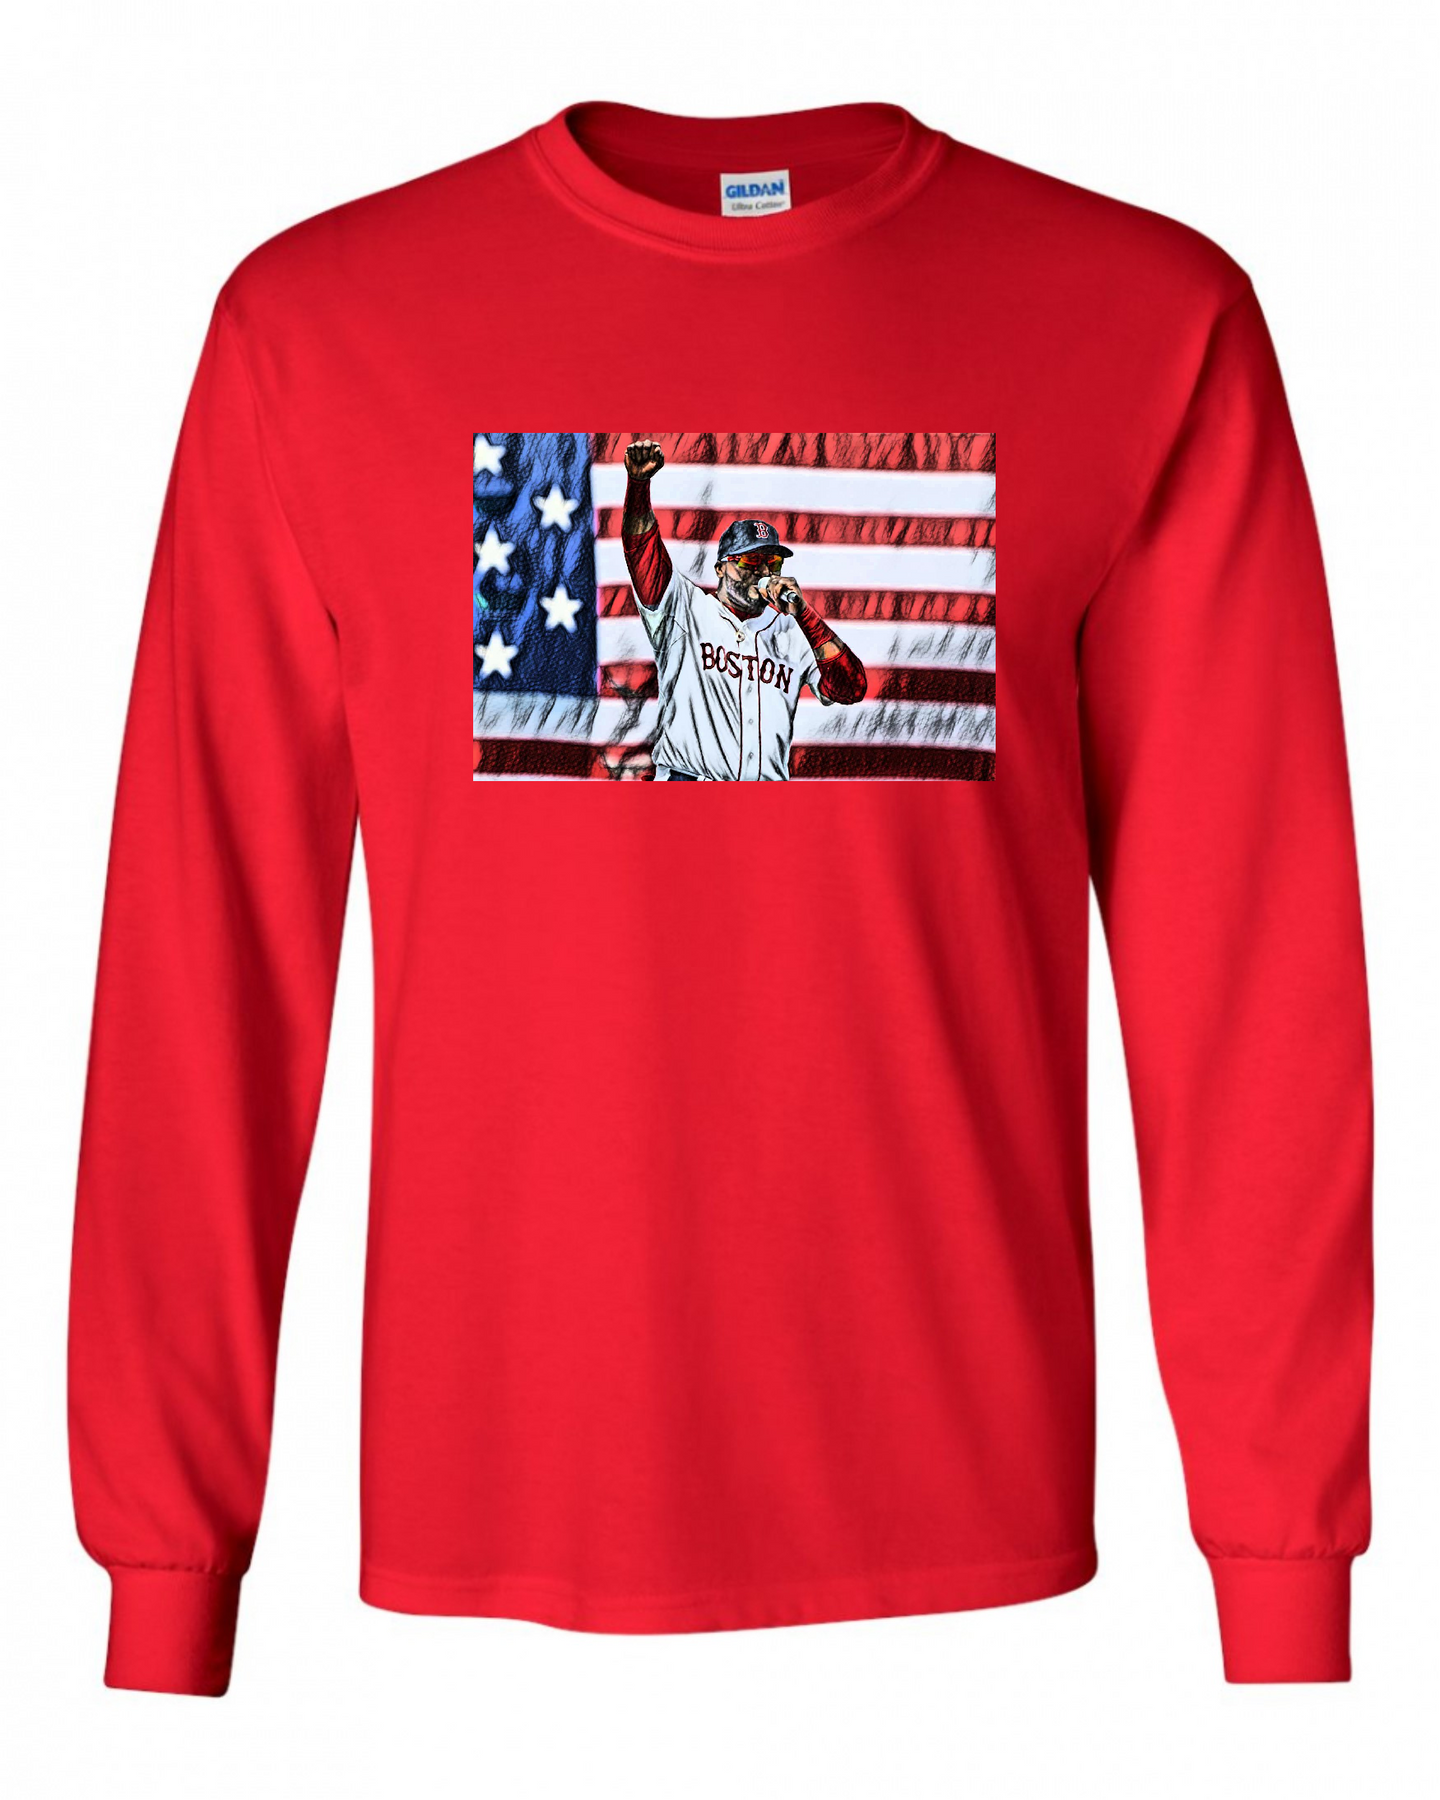 David Ortiz, 2013 Boston Strong Long Sleeve